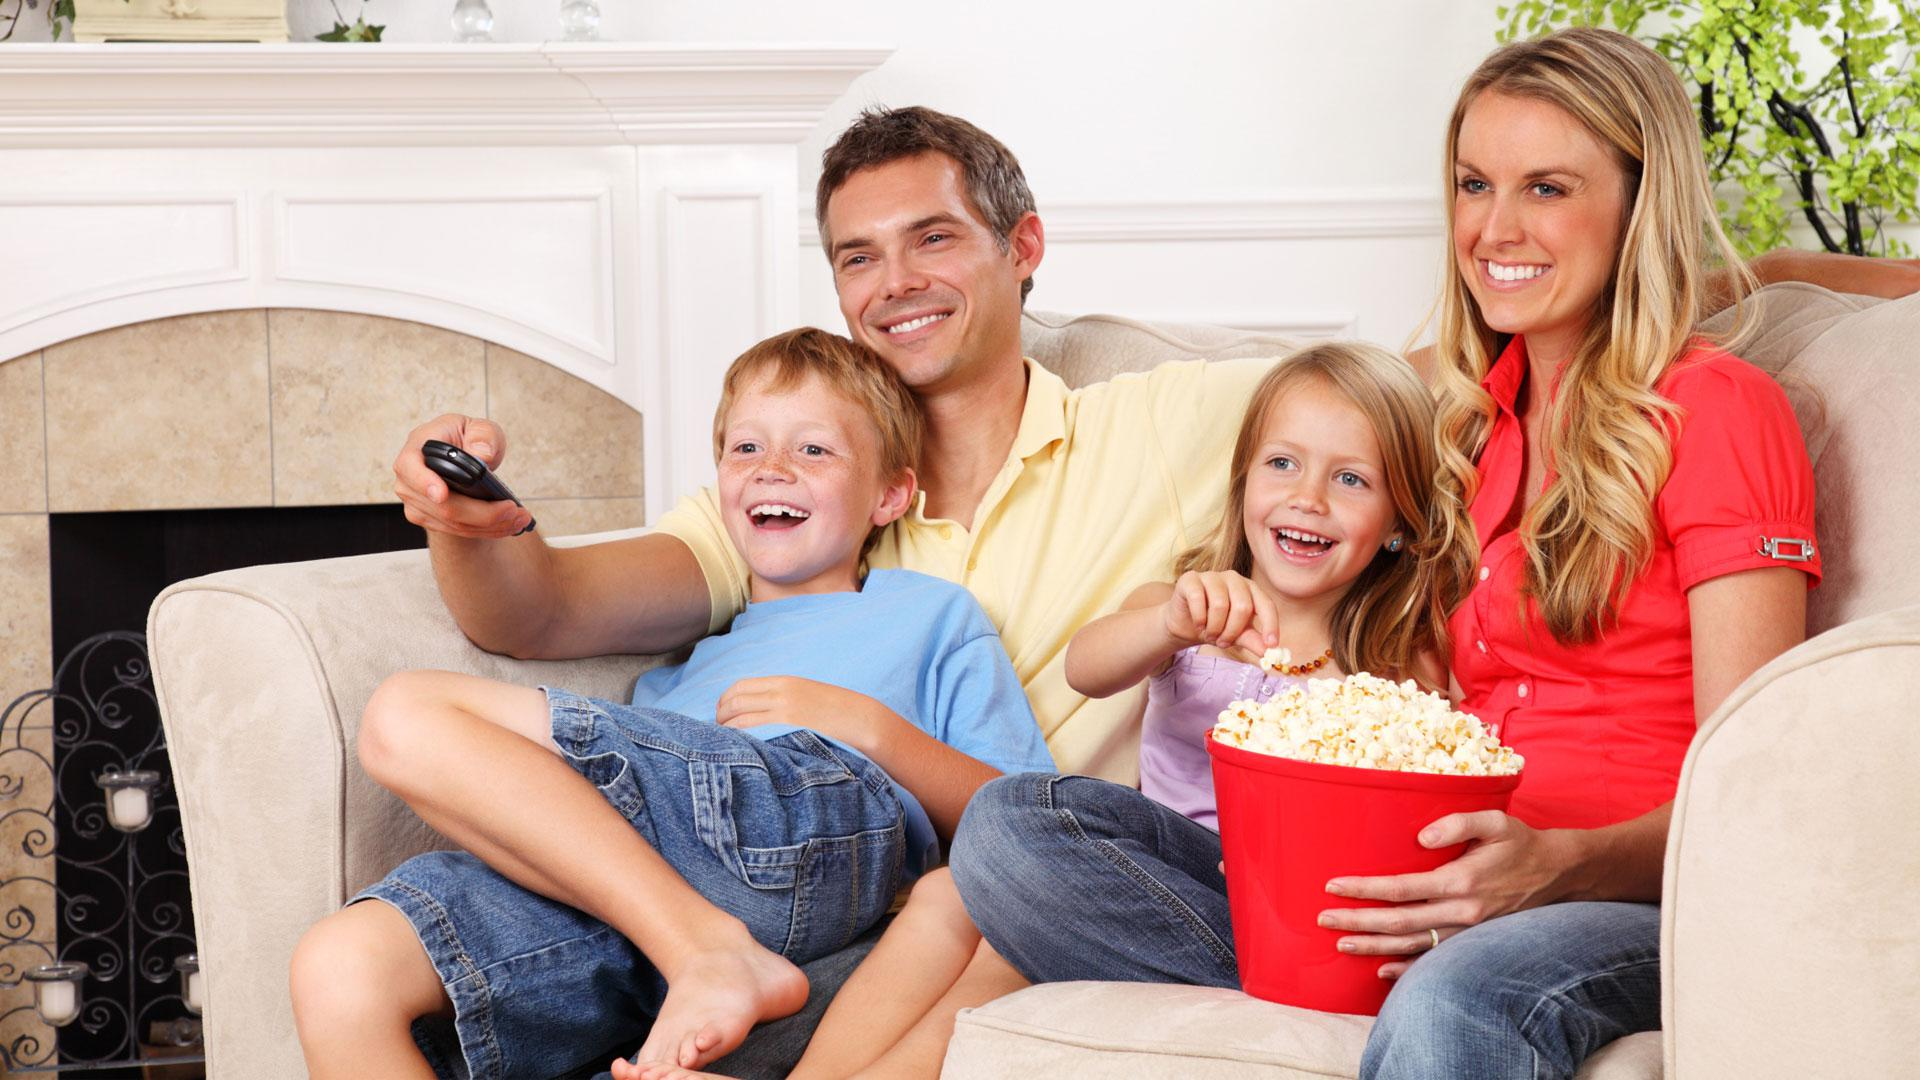 How to plan the perfect family movie night – SheKnows